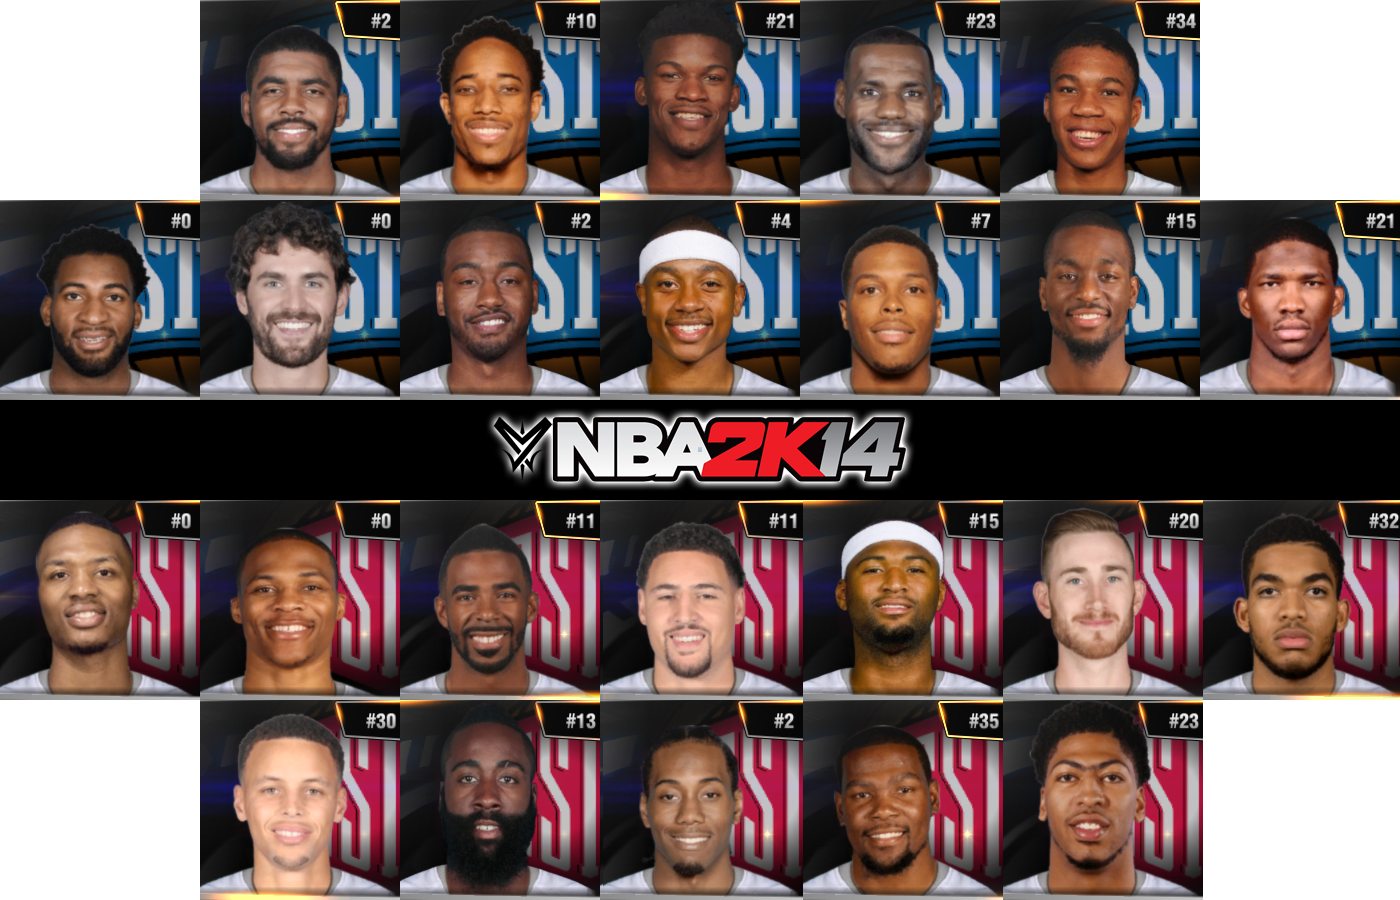 Miami heat roster nba - We Release The First Update Of The New Year For The Nba Roster New Transactions Player Updates Updated Nba All Star Teams Jerseys And A Lot Of Error